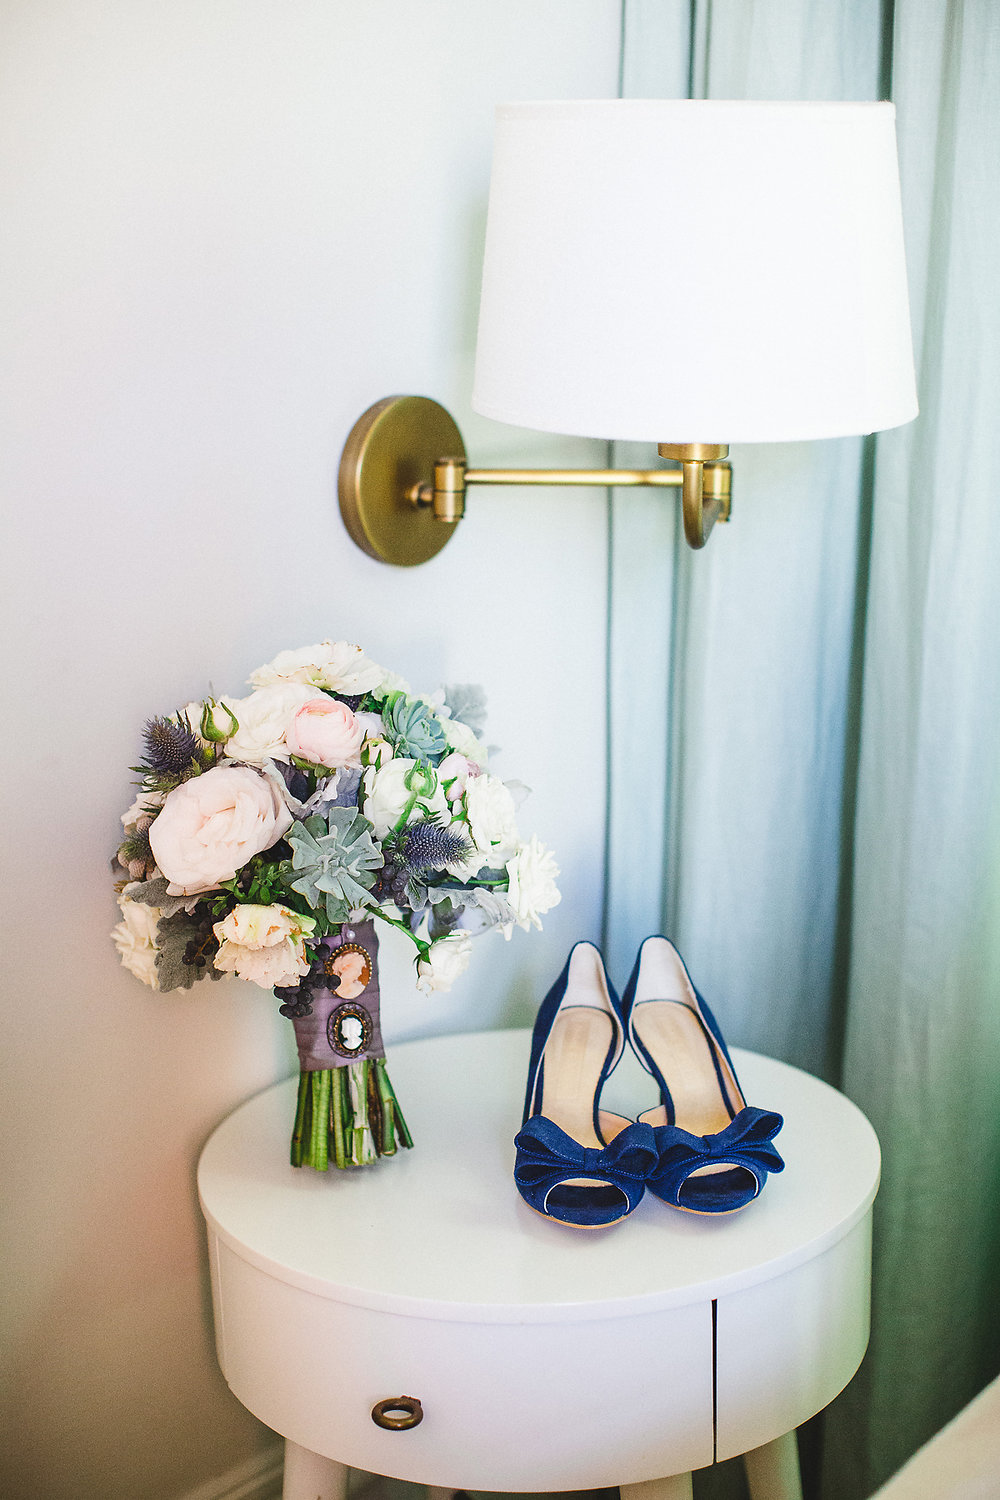 Izzy Hudgins Wedding Photography bride's shoes next to vase of flowers